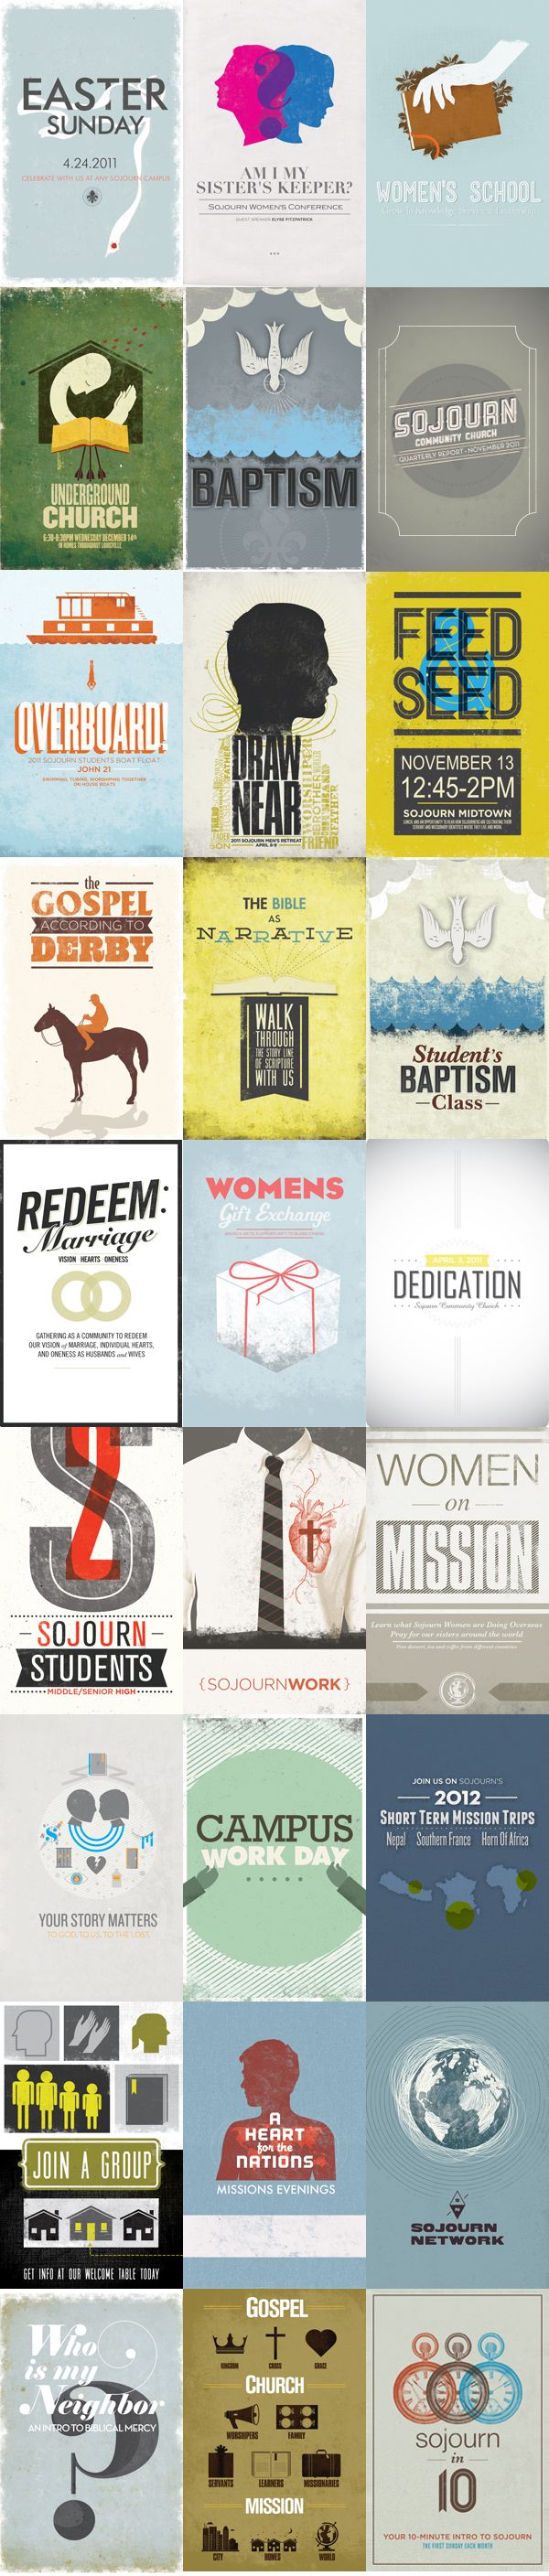 Book covers, graphic art and fonts - perfect inspiration for fabric designs.